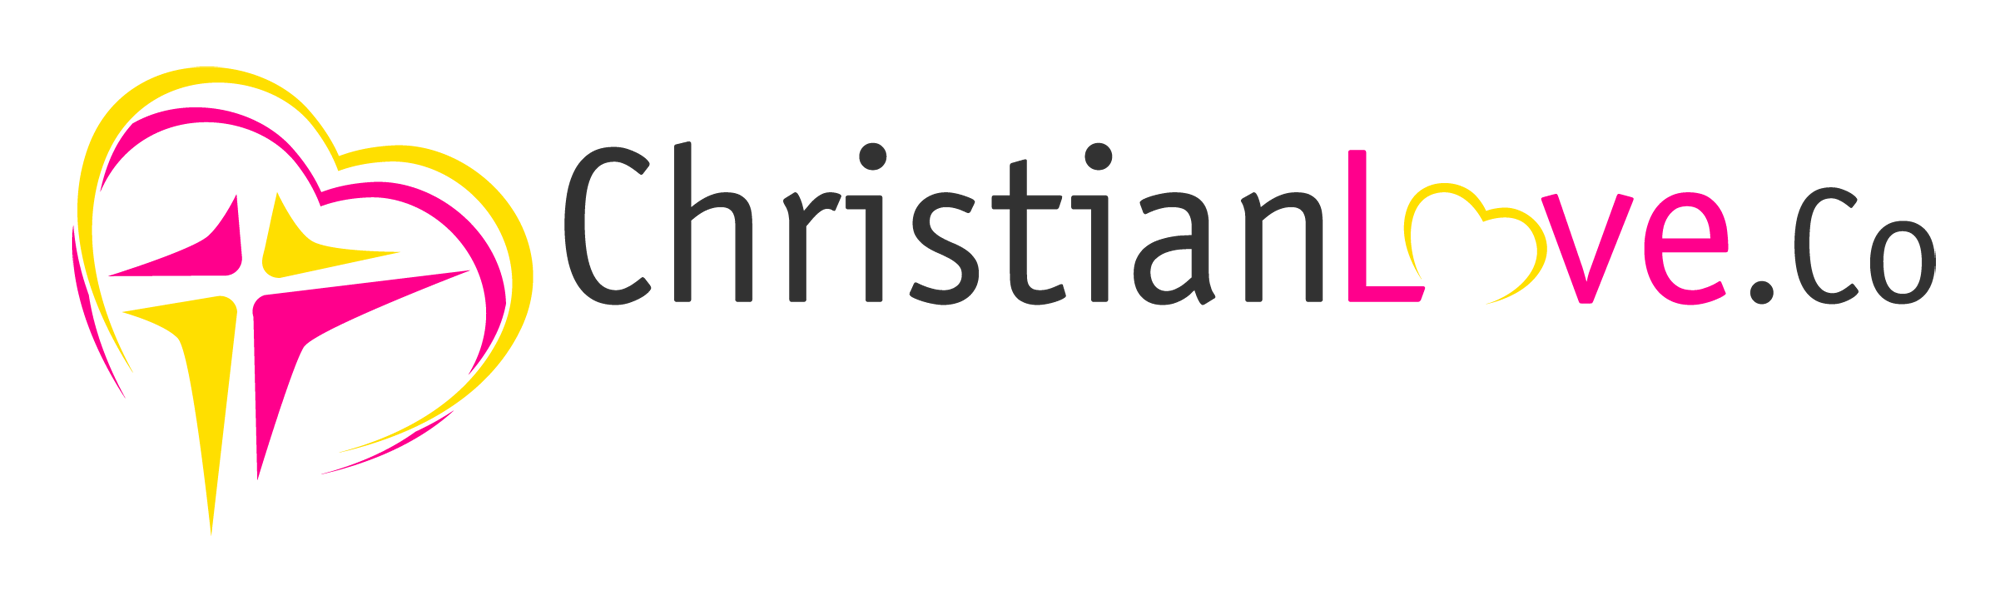 Christian_Love2.png